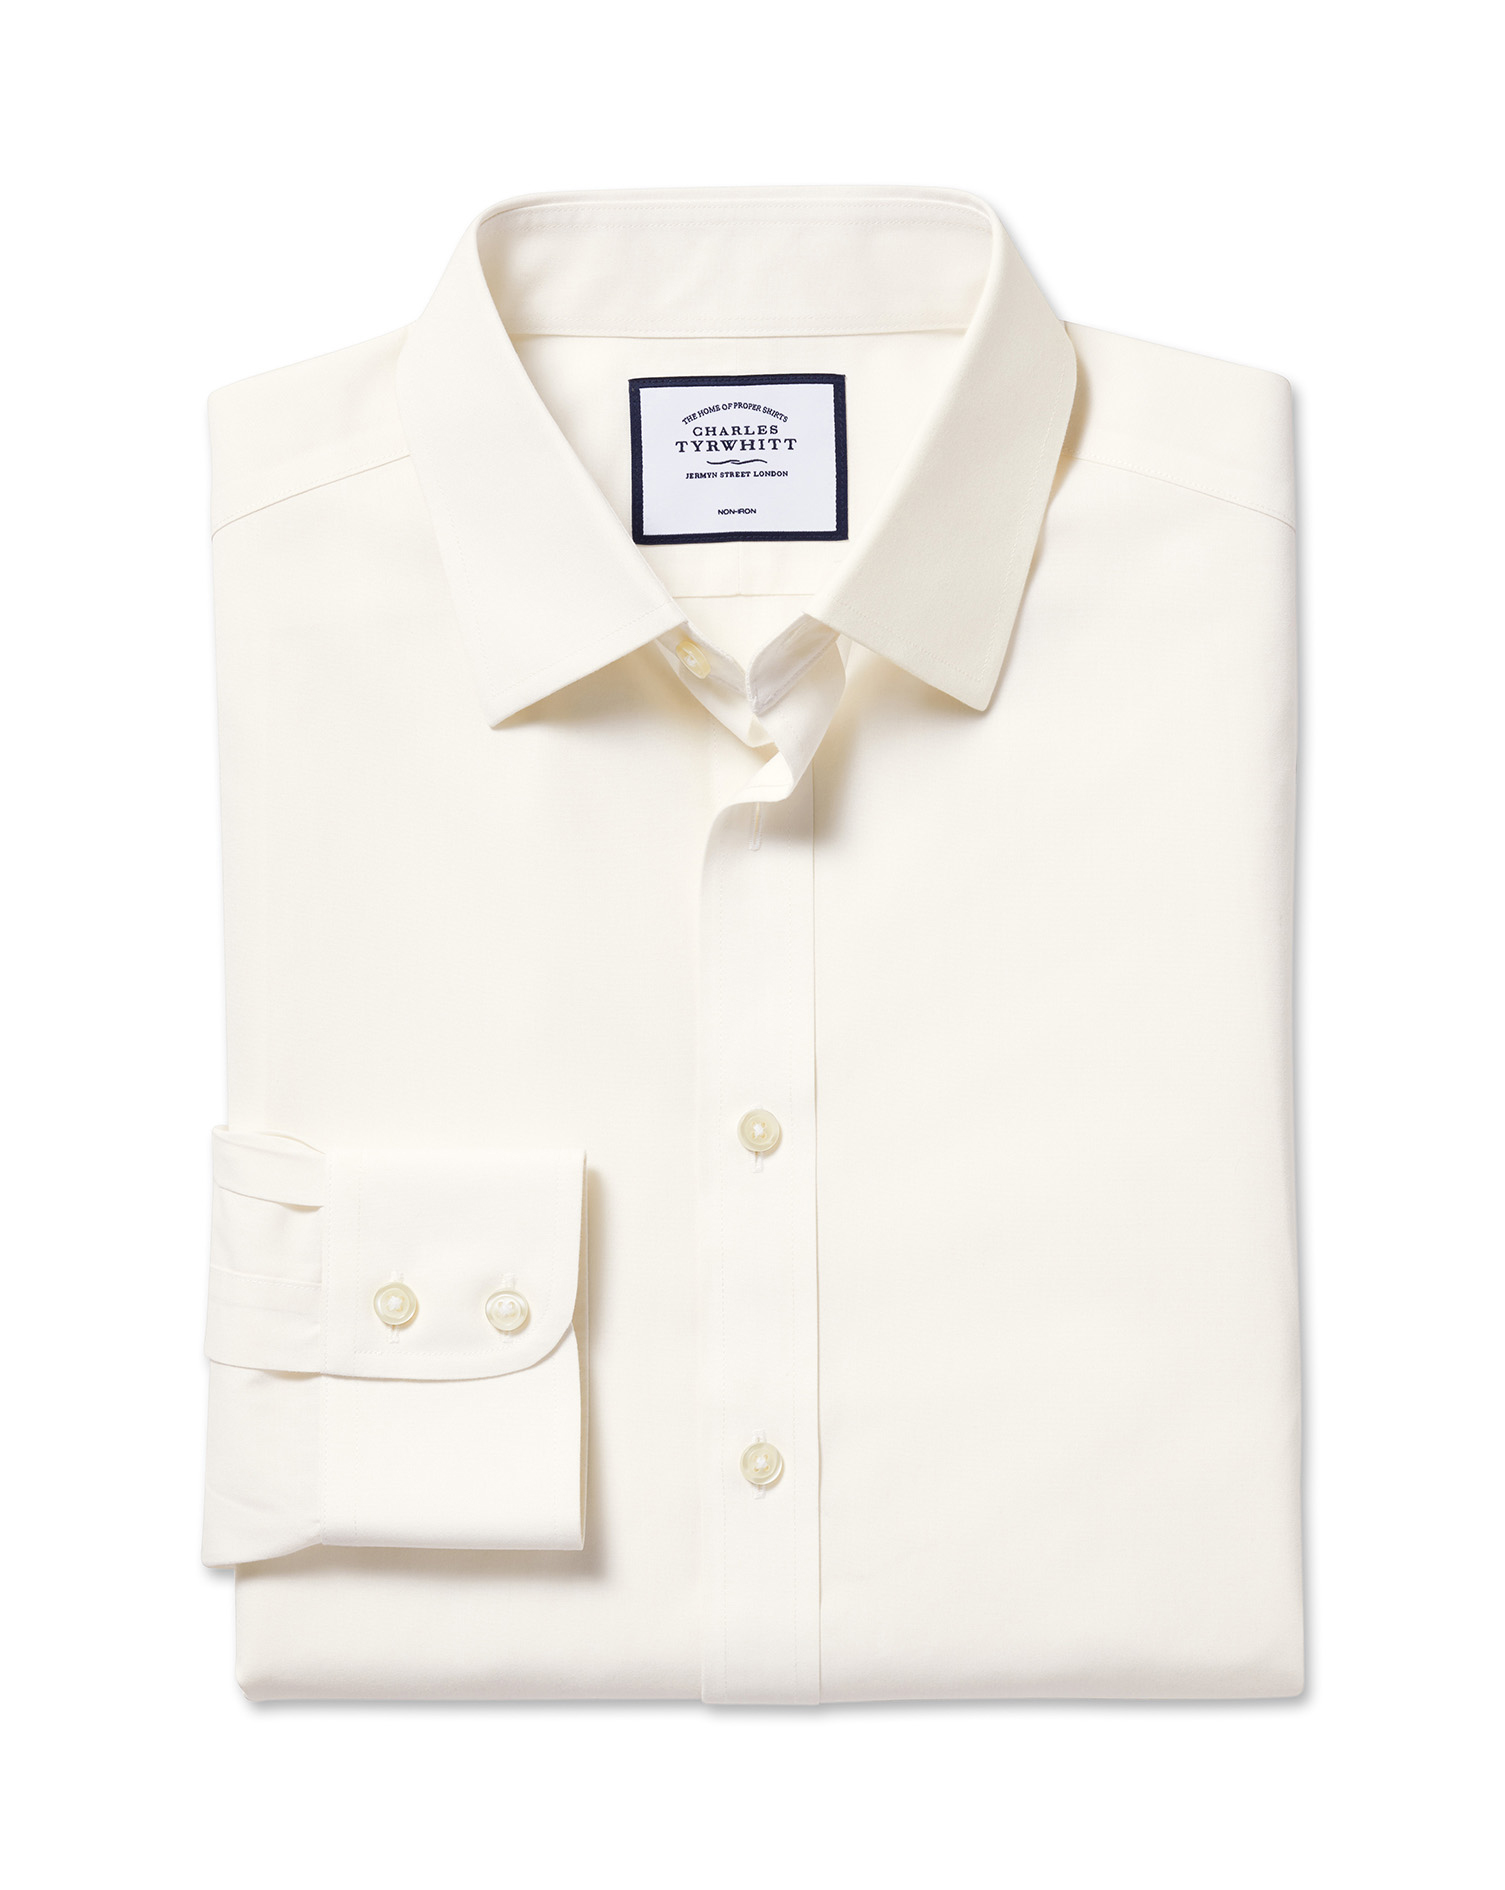 Classic Fit Non-Iron Poplin Cream Cotton Formal Shirt Double Cuff Size 19/37 by Charles Tyrwhitt